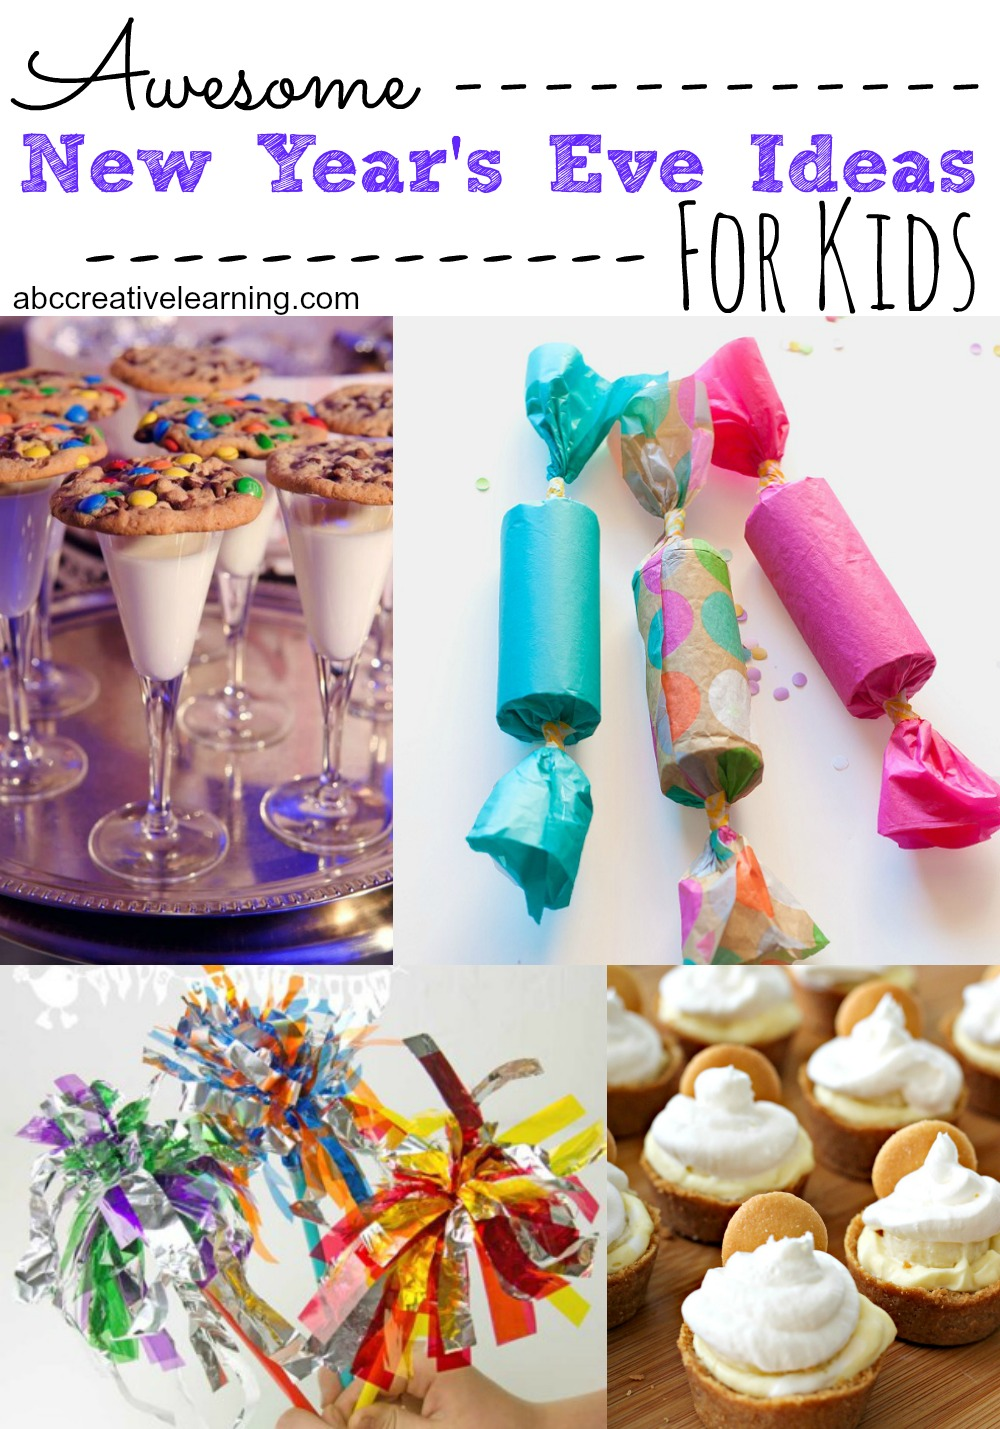 Awesome New Year's Eve Ideas for Kids